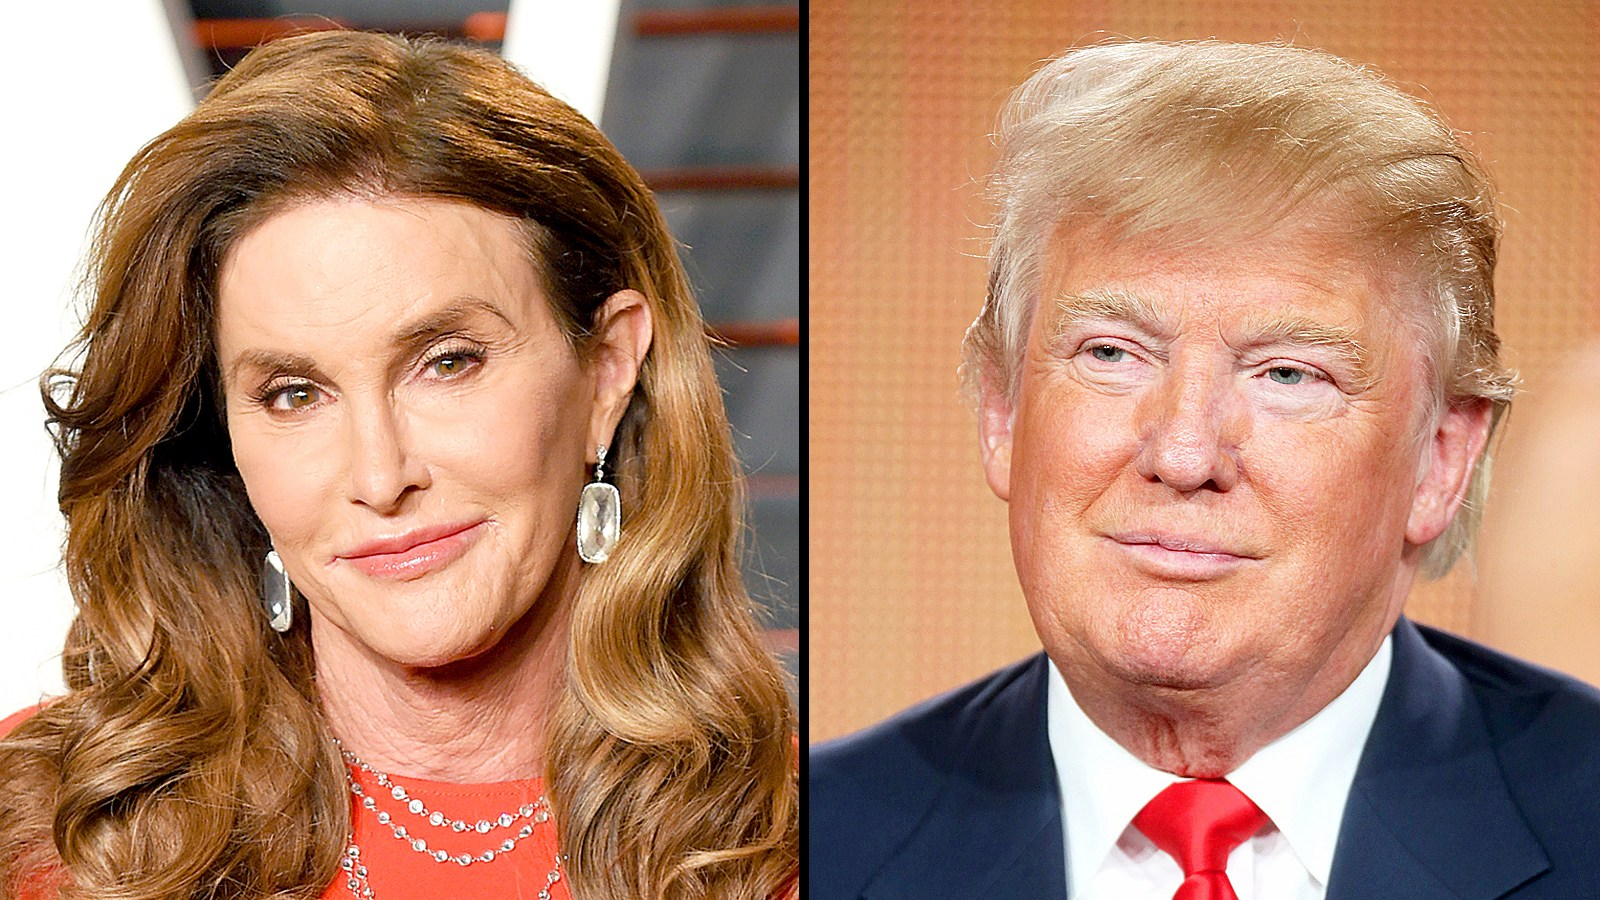 Caitlyn Jenner and Donald Trump